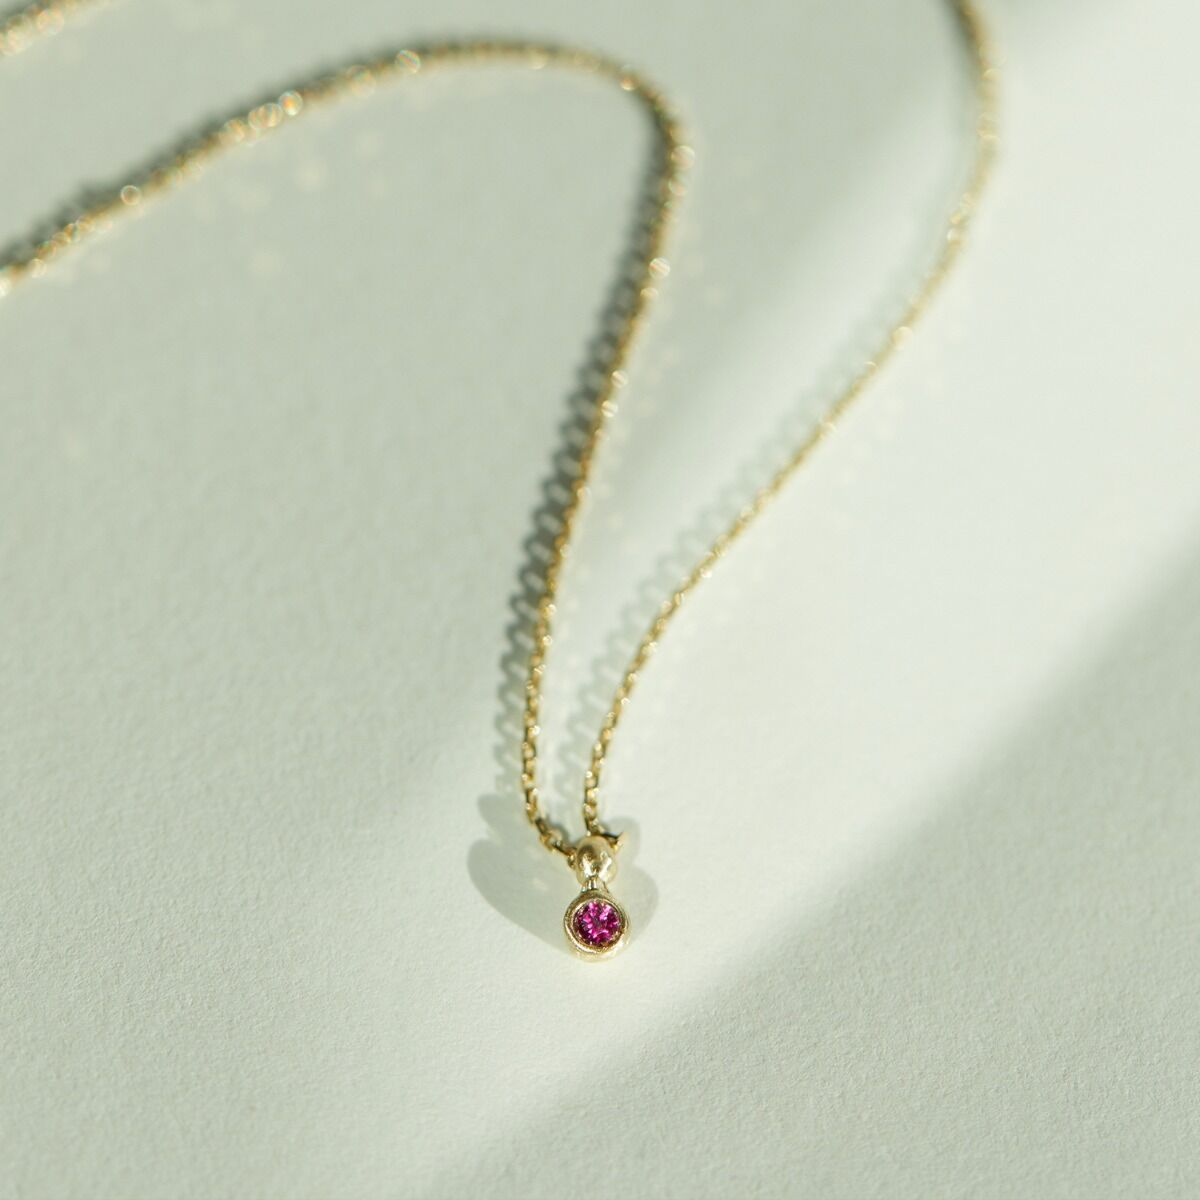 Ruby Spark Necklace image